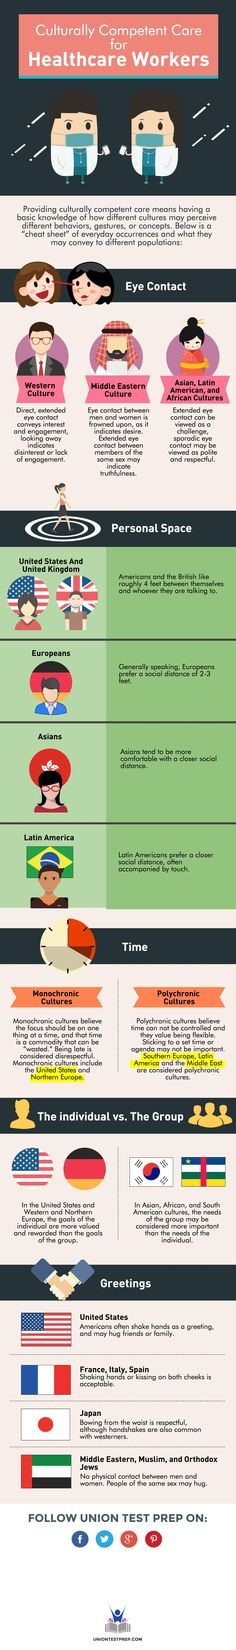 Examples on how nurses can show cultural equity?